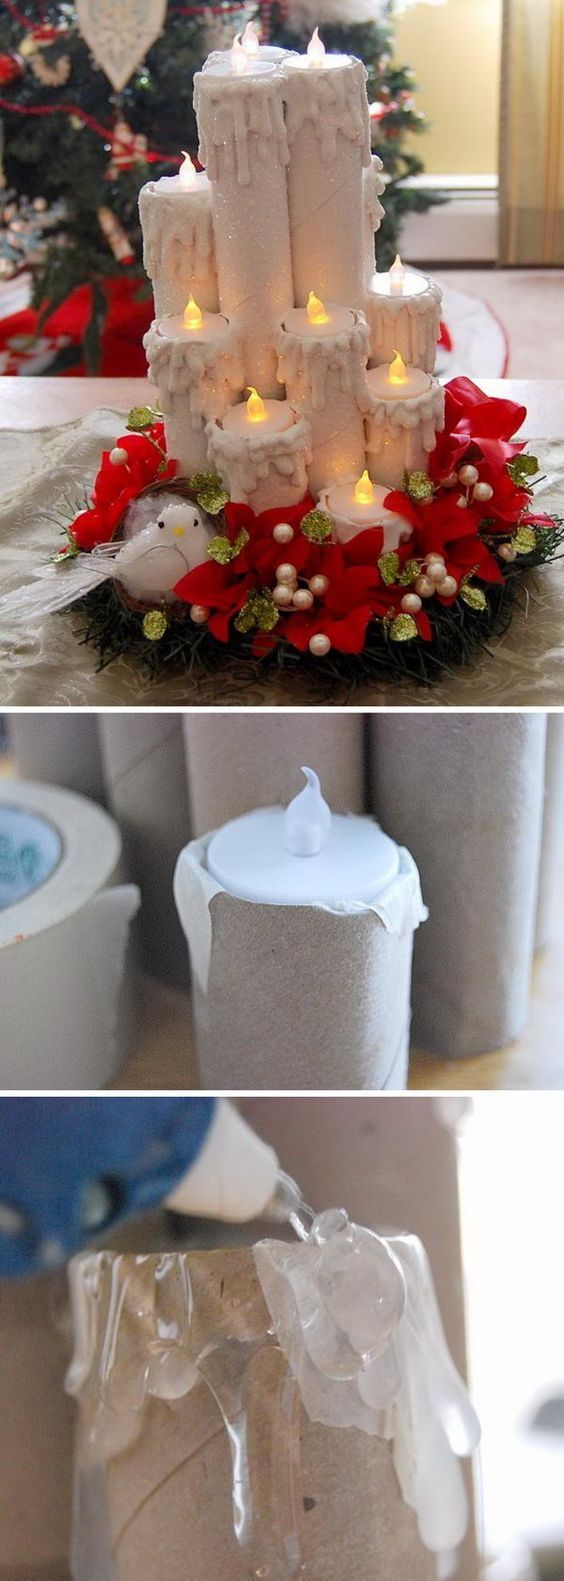 Christmas decoration with candles that spins - 30 Diy Christmas Decoration Ideas